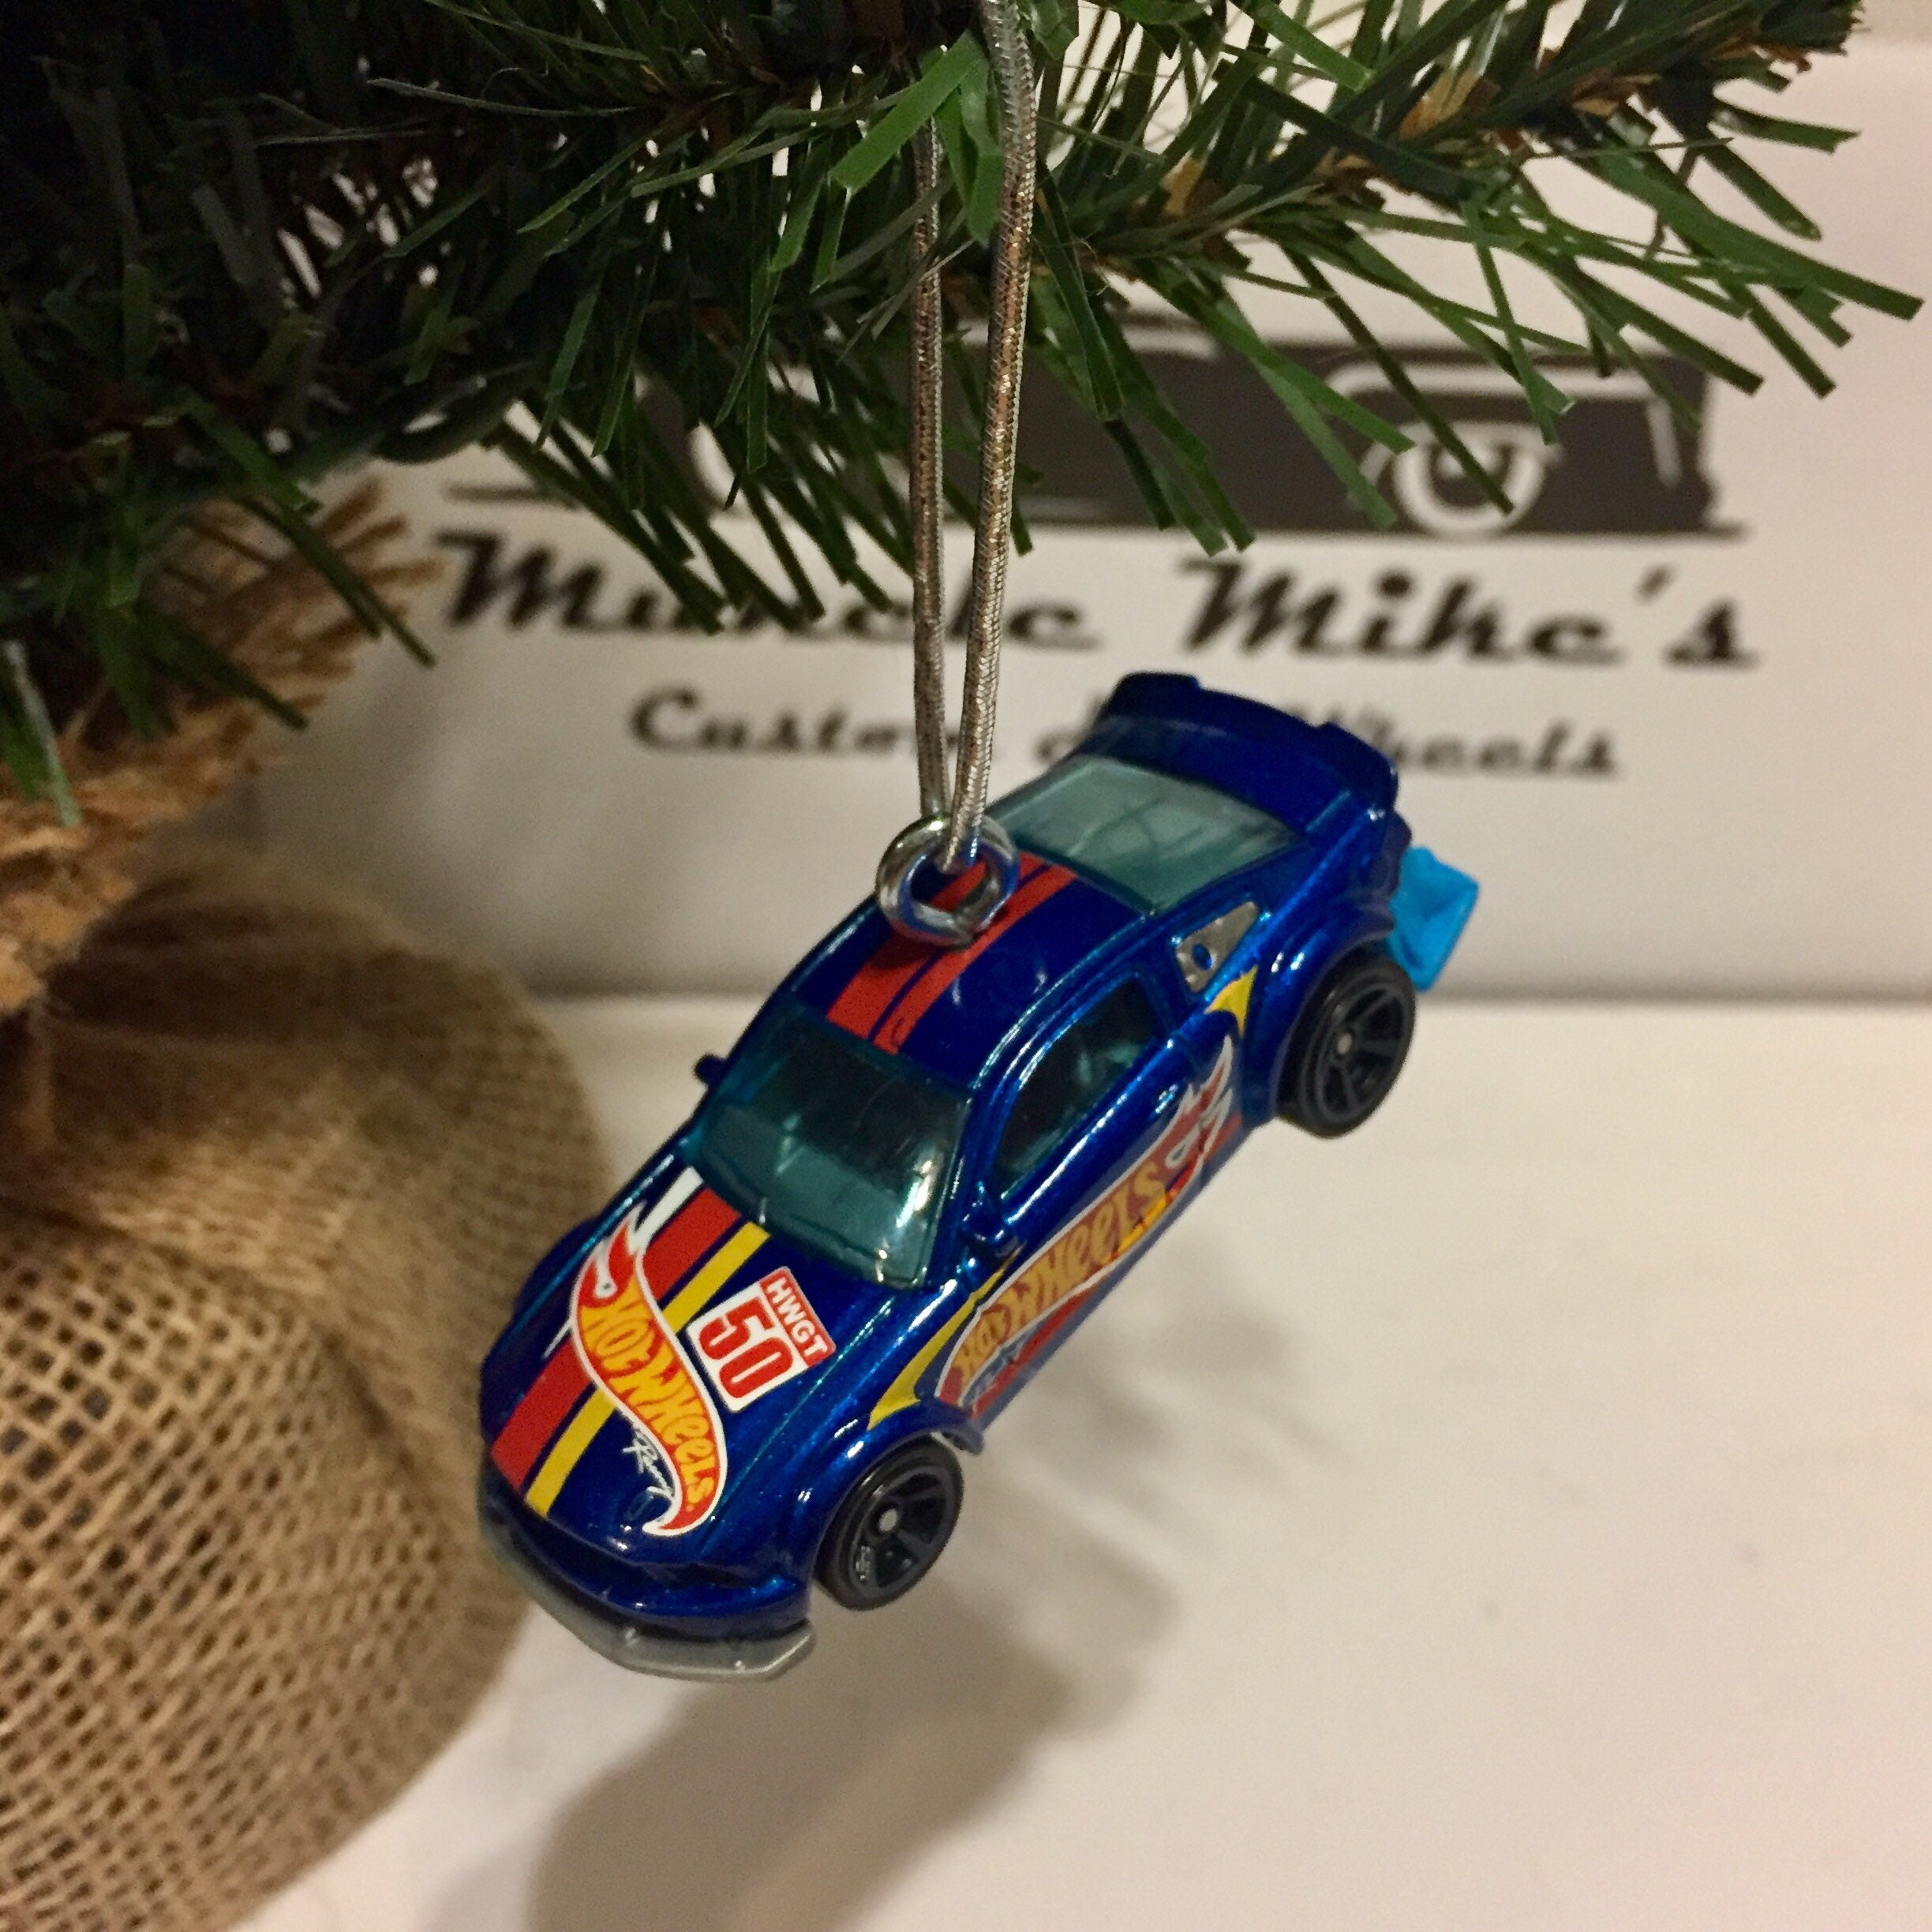 Hot Wheels Christmas Ornament 2015  2005 Ford Mustang Free Shipping!